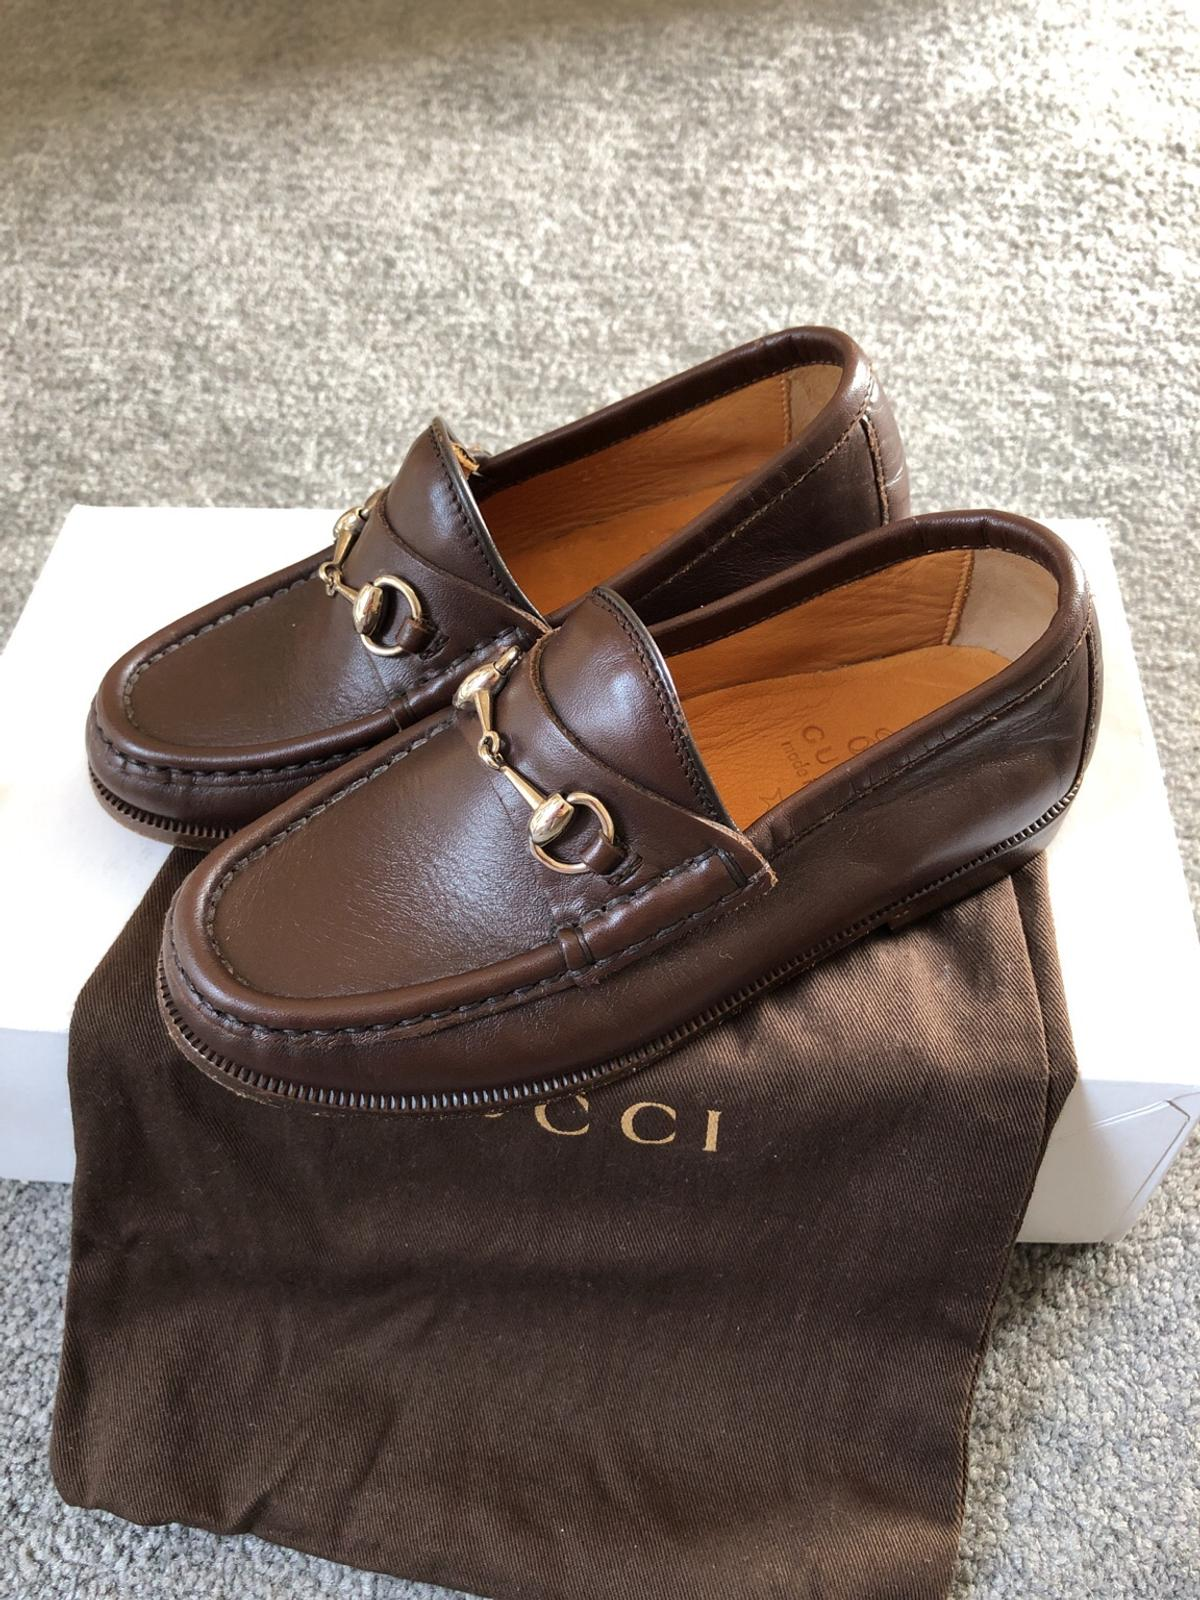 cdbd7926822 Description. New size 30 brown Gucci loafers never worn. £100 .